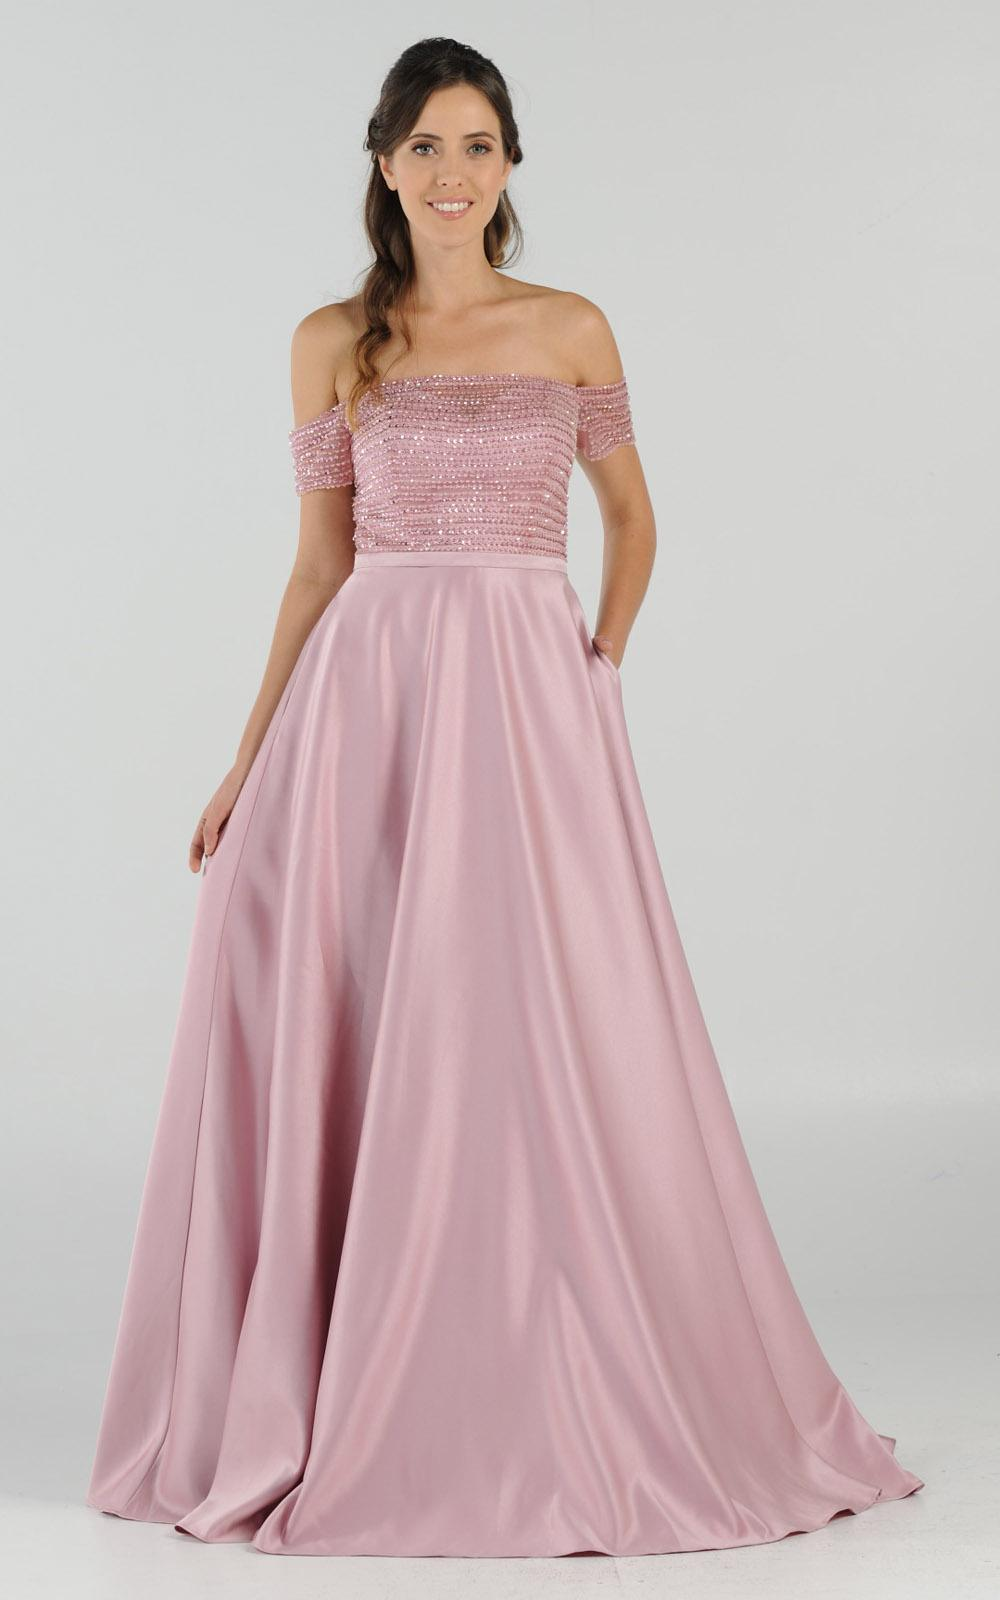 78c201a4d73 Prom Dress Sites In Usa - Gomes Weine AG